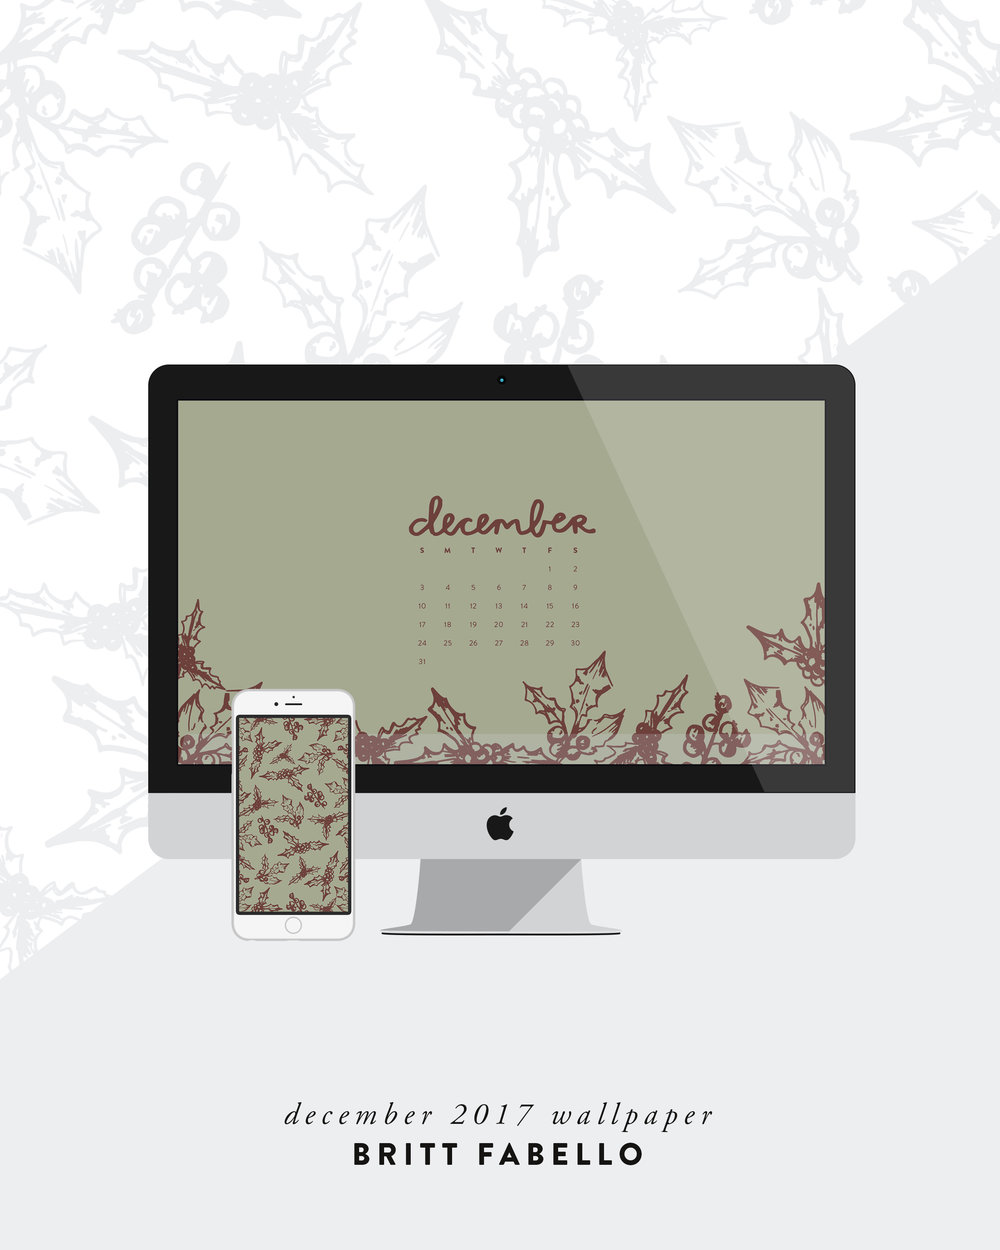 December 2017 Holiday Wallpaper by Britt Fabello